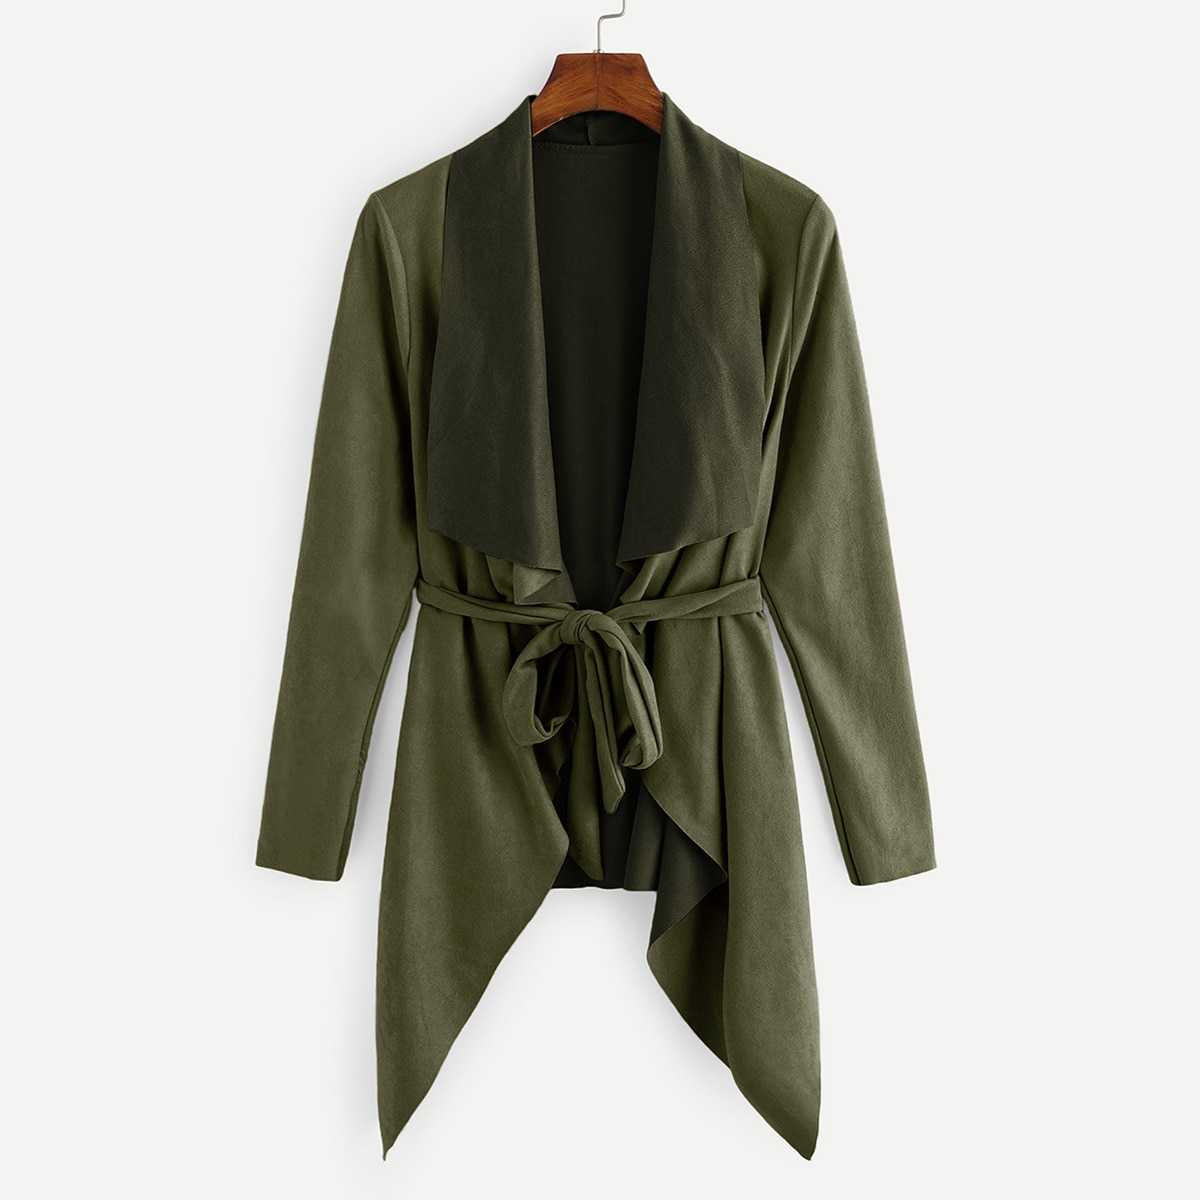 Waterfall Collar Suede Solid Coat in Army Green by ROMWE on GOOFASH